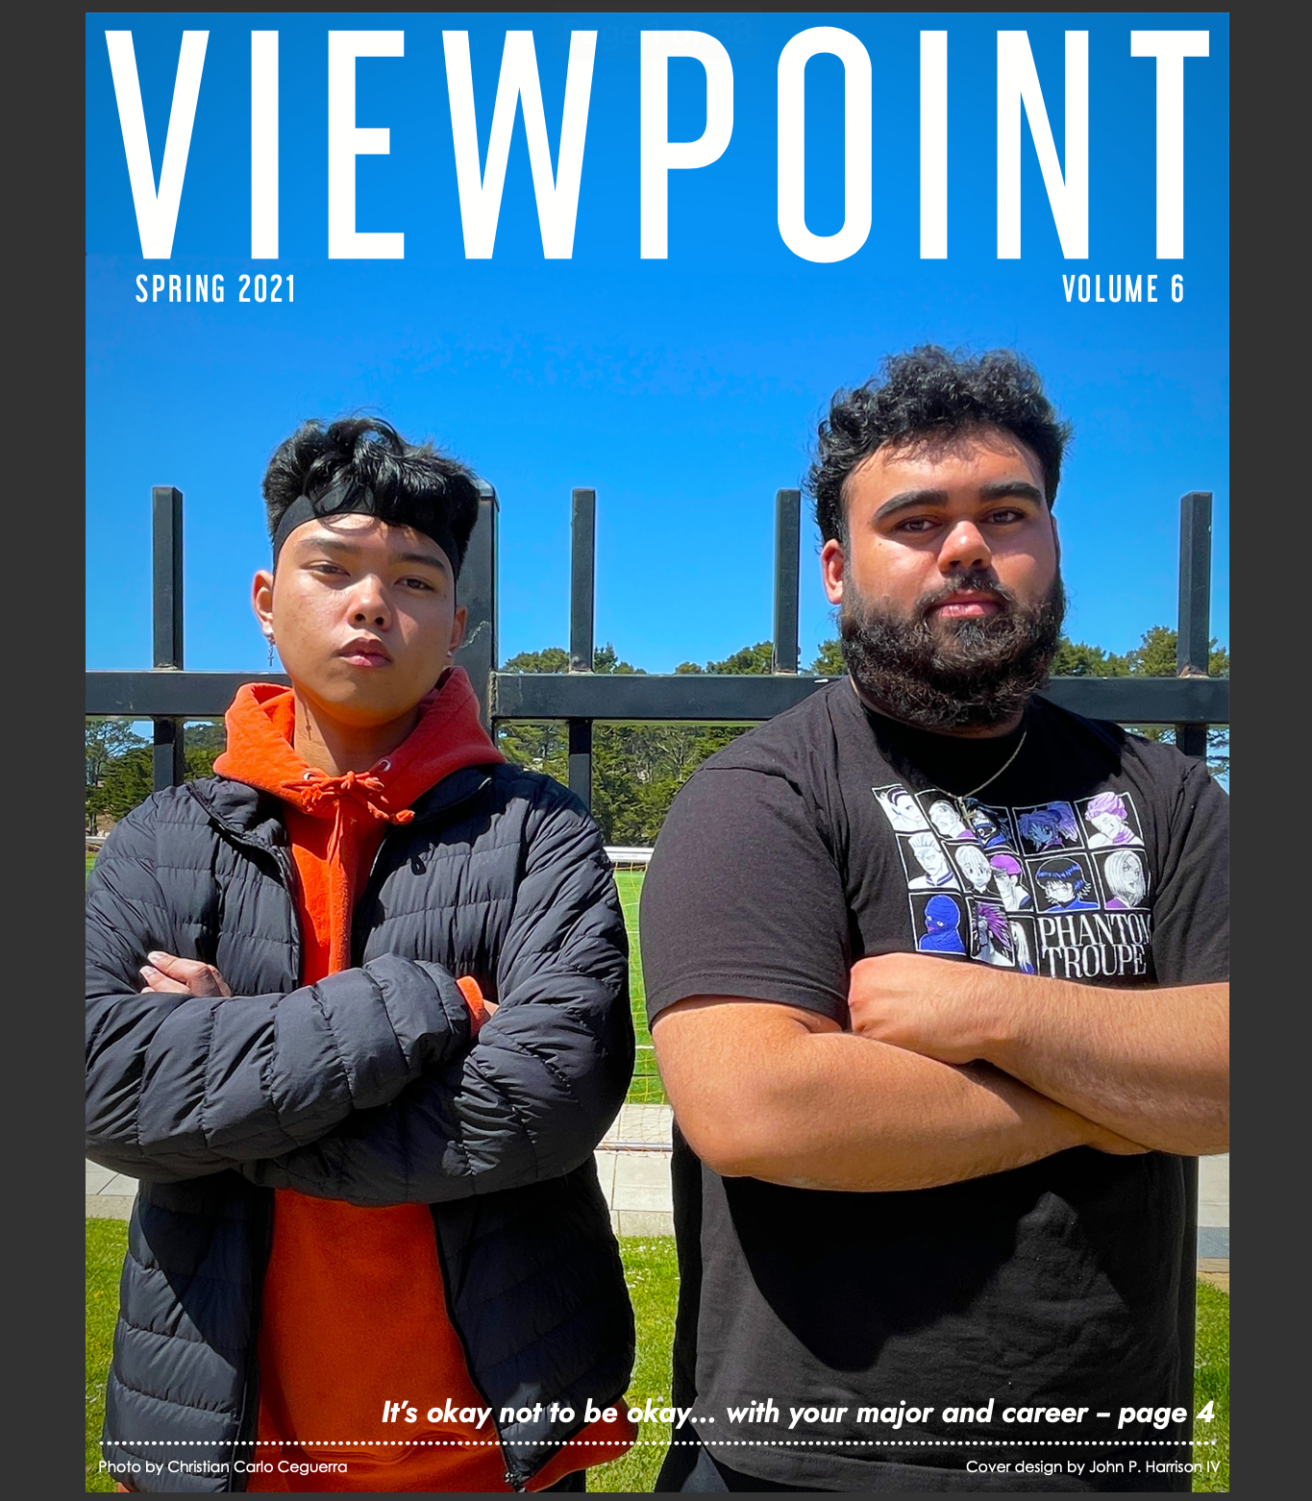 Viewpoint Volume 6 – Spring 2021